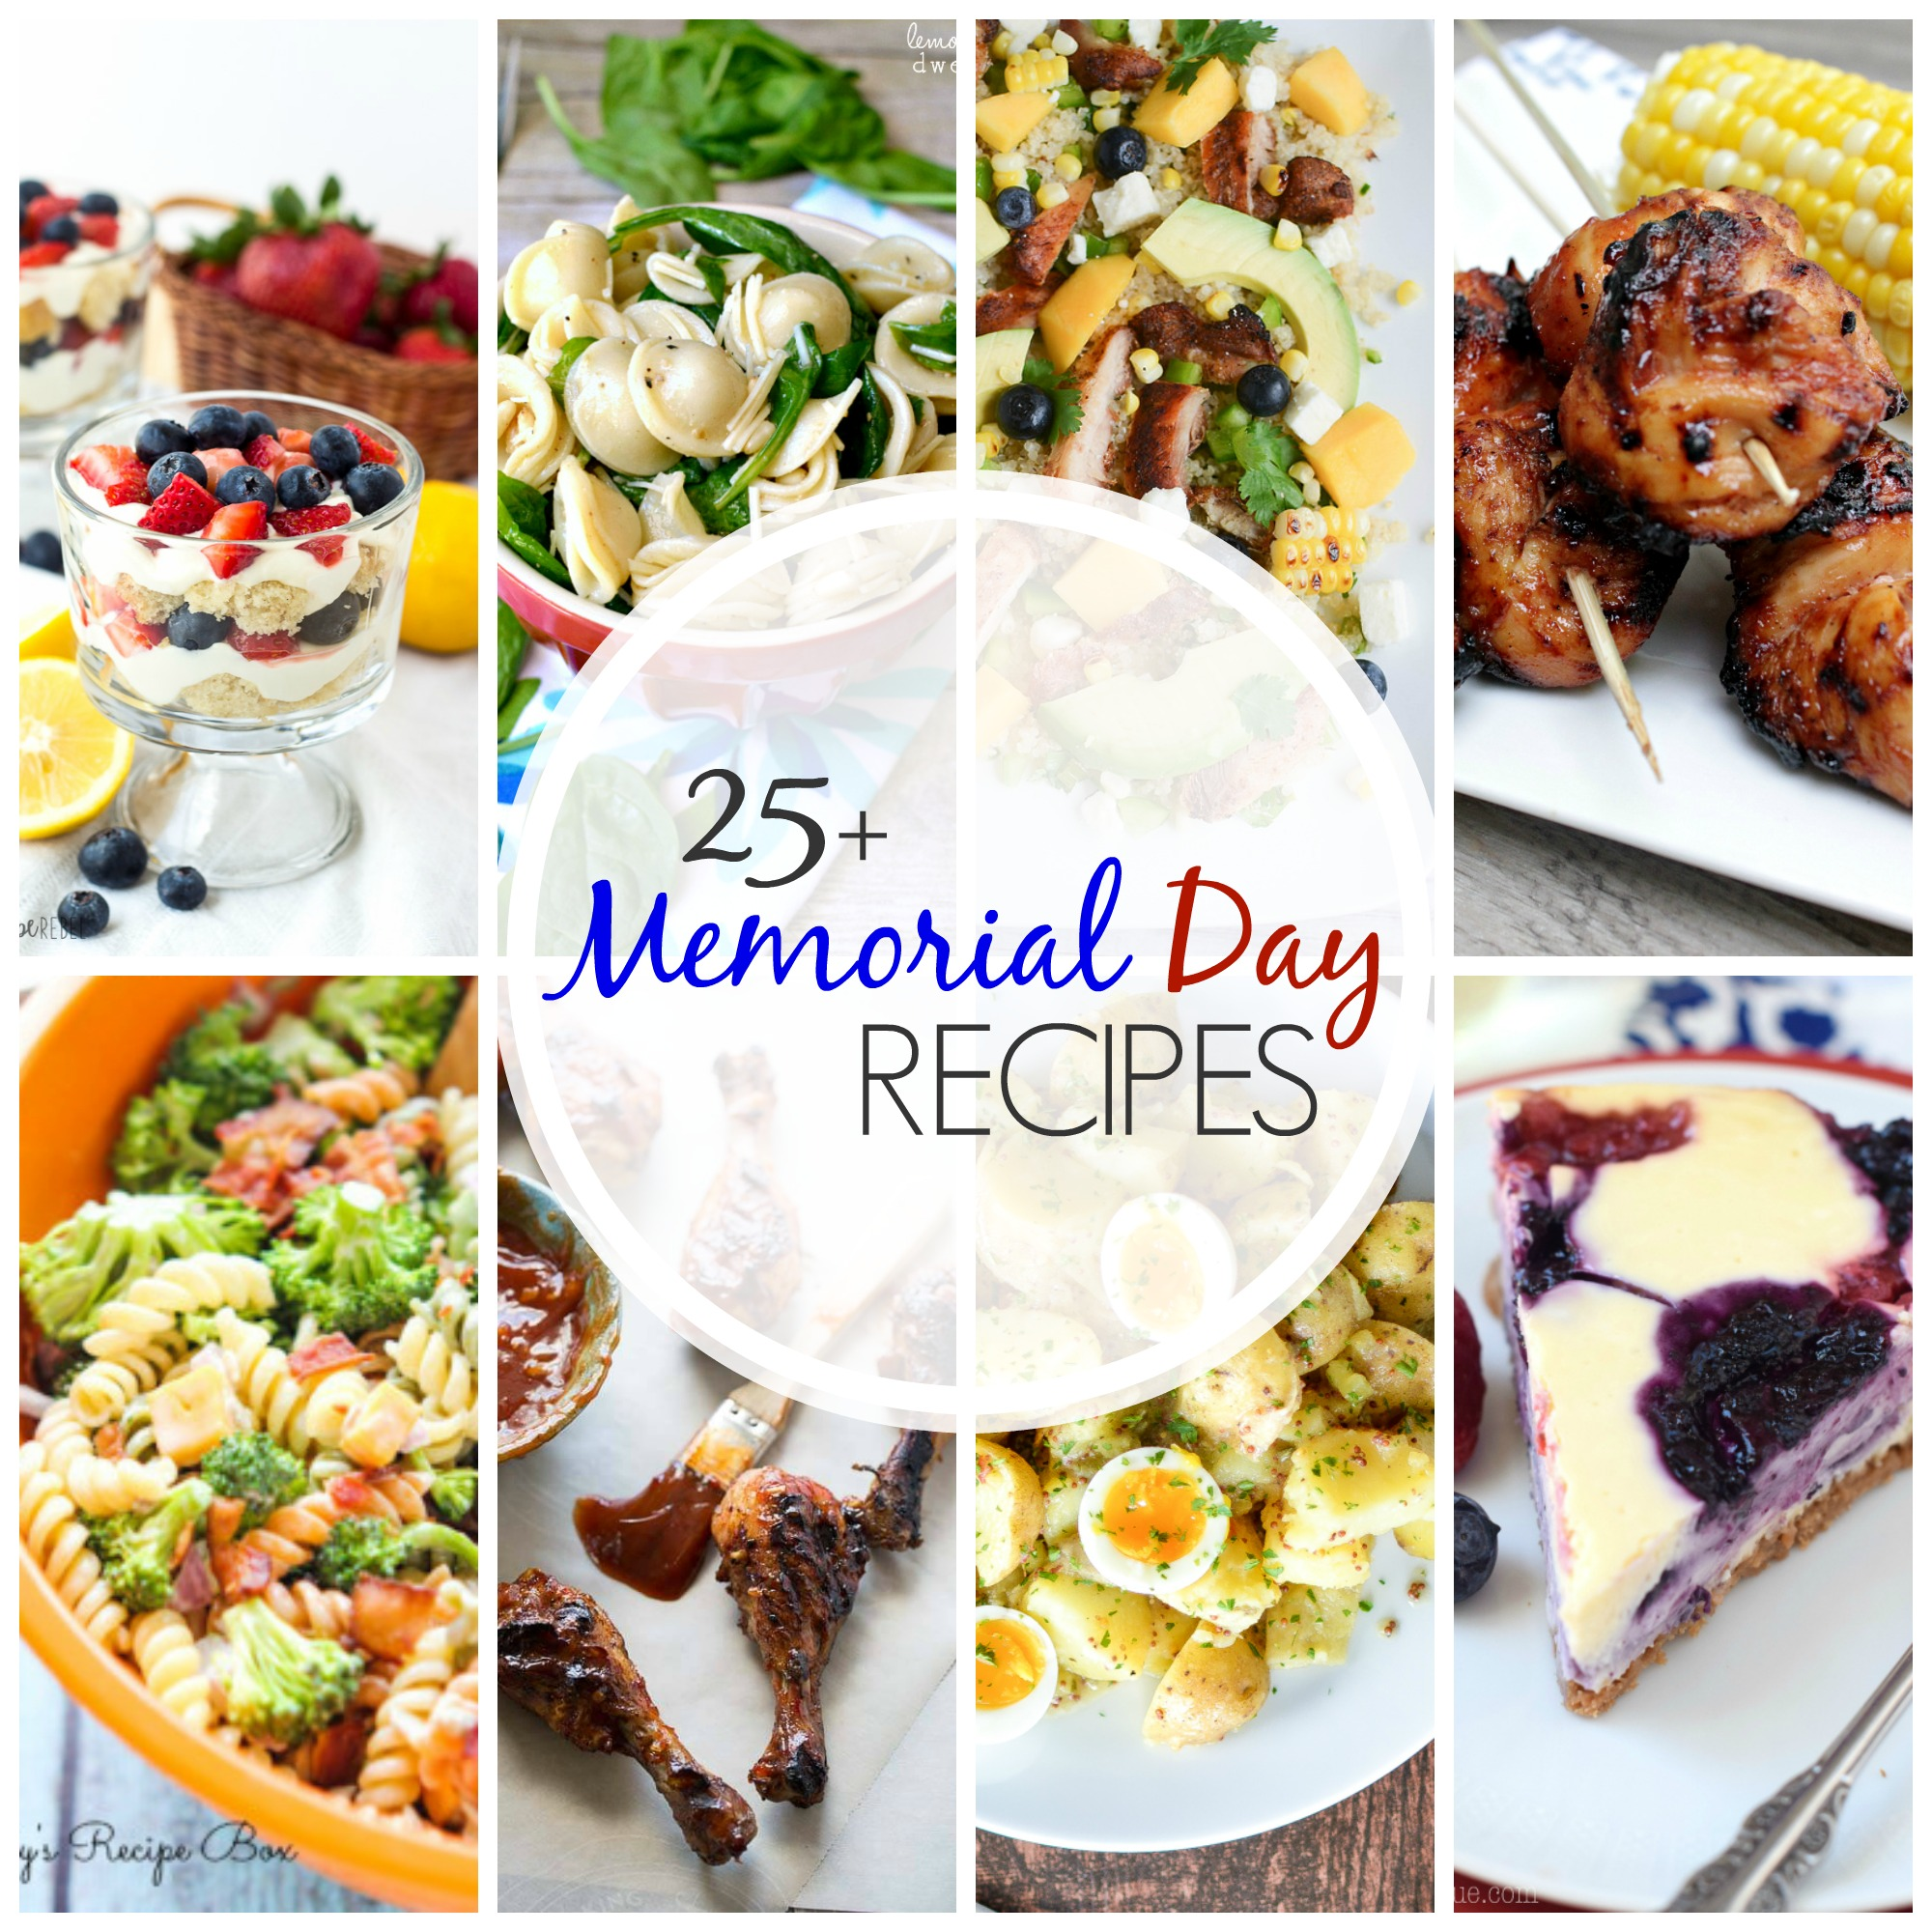 25+ Memorial Day Recipes